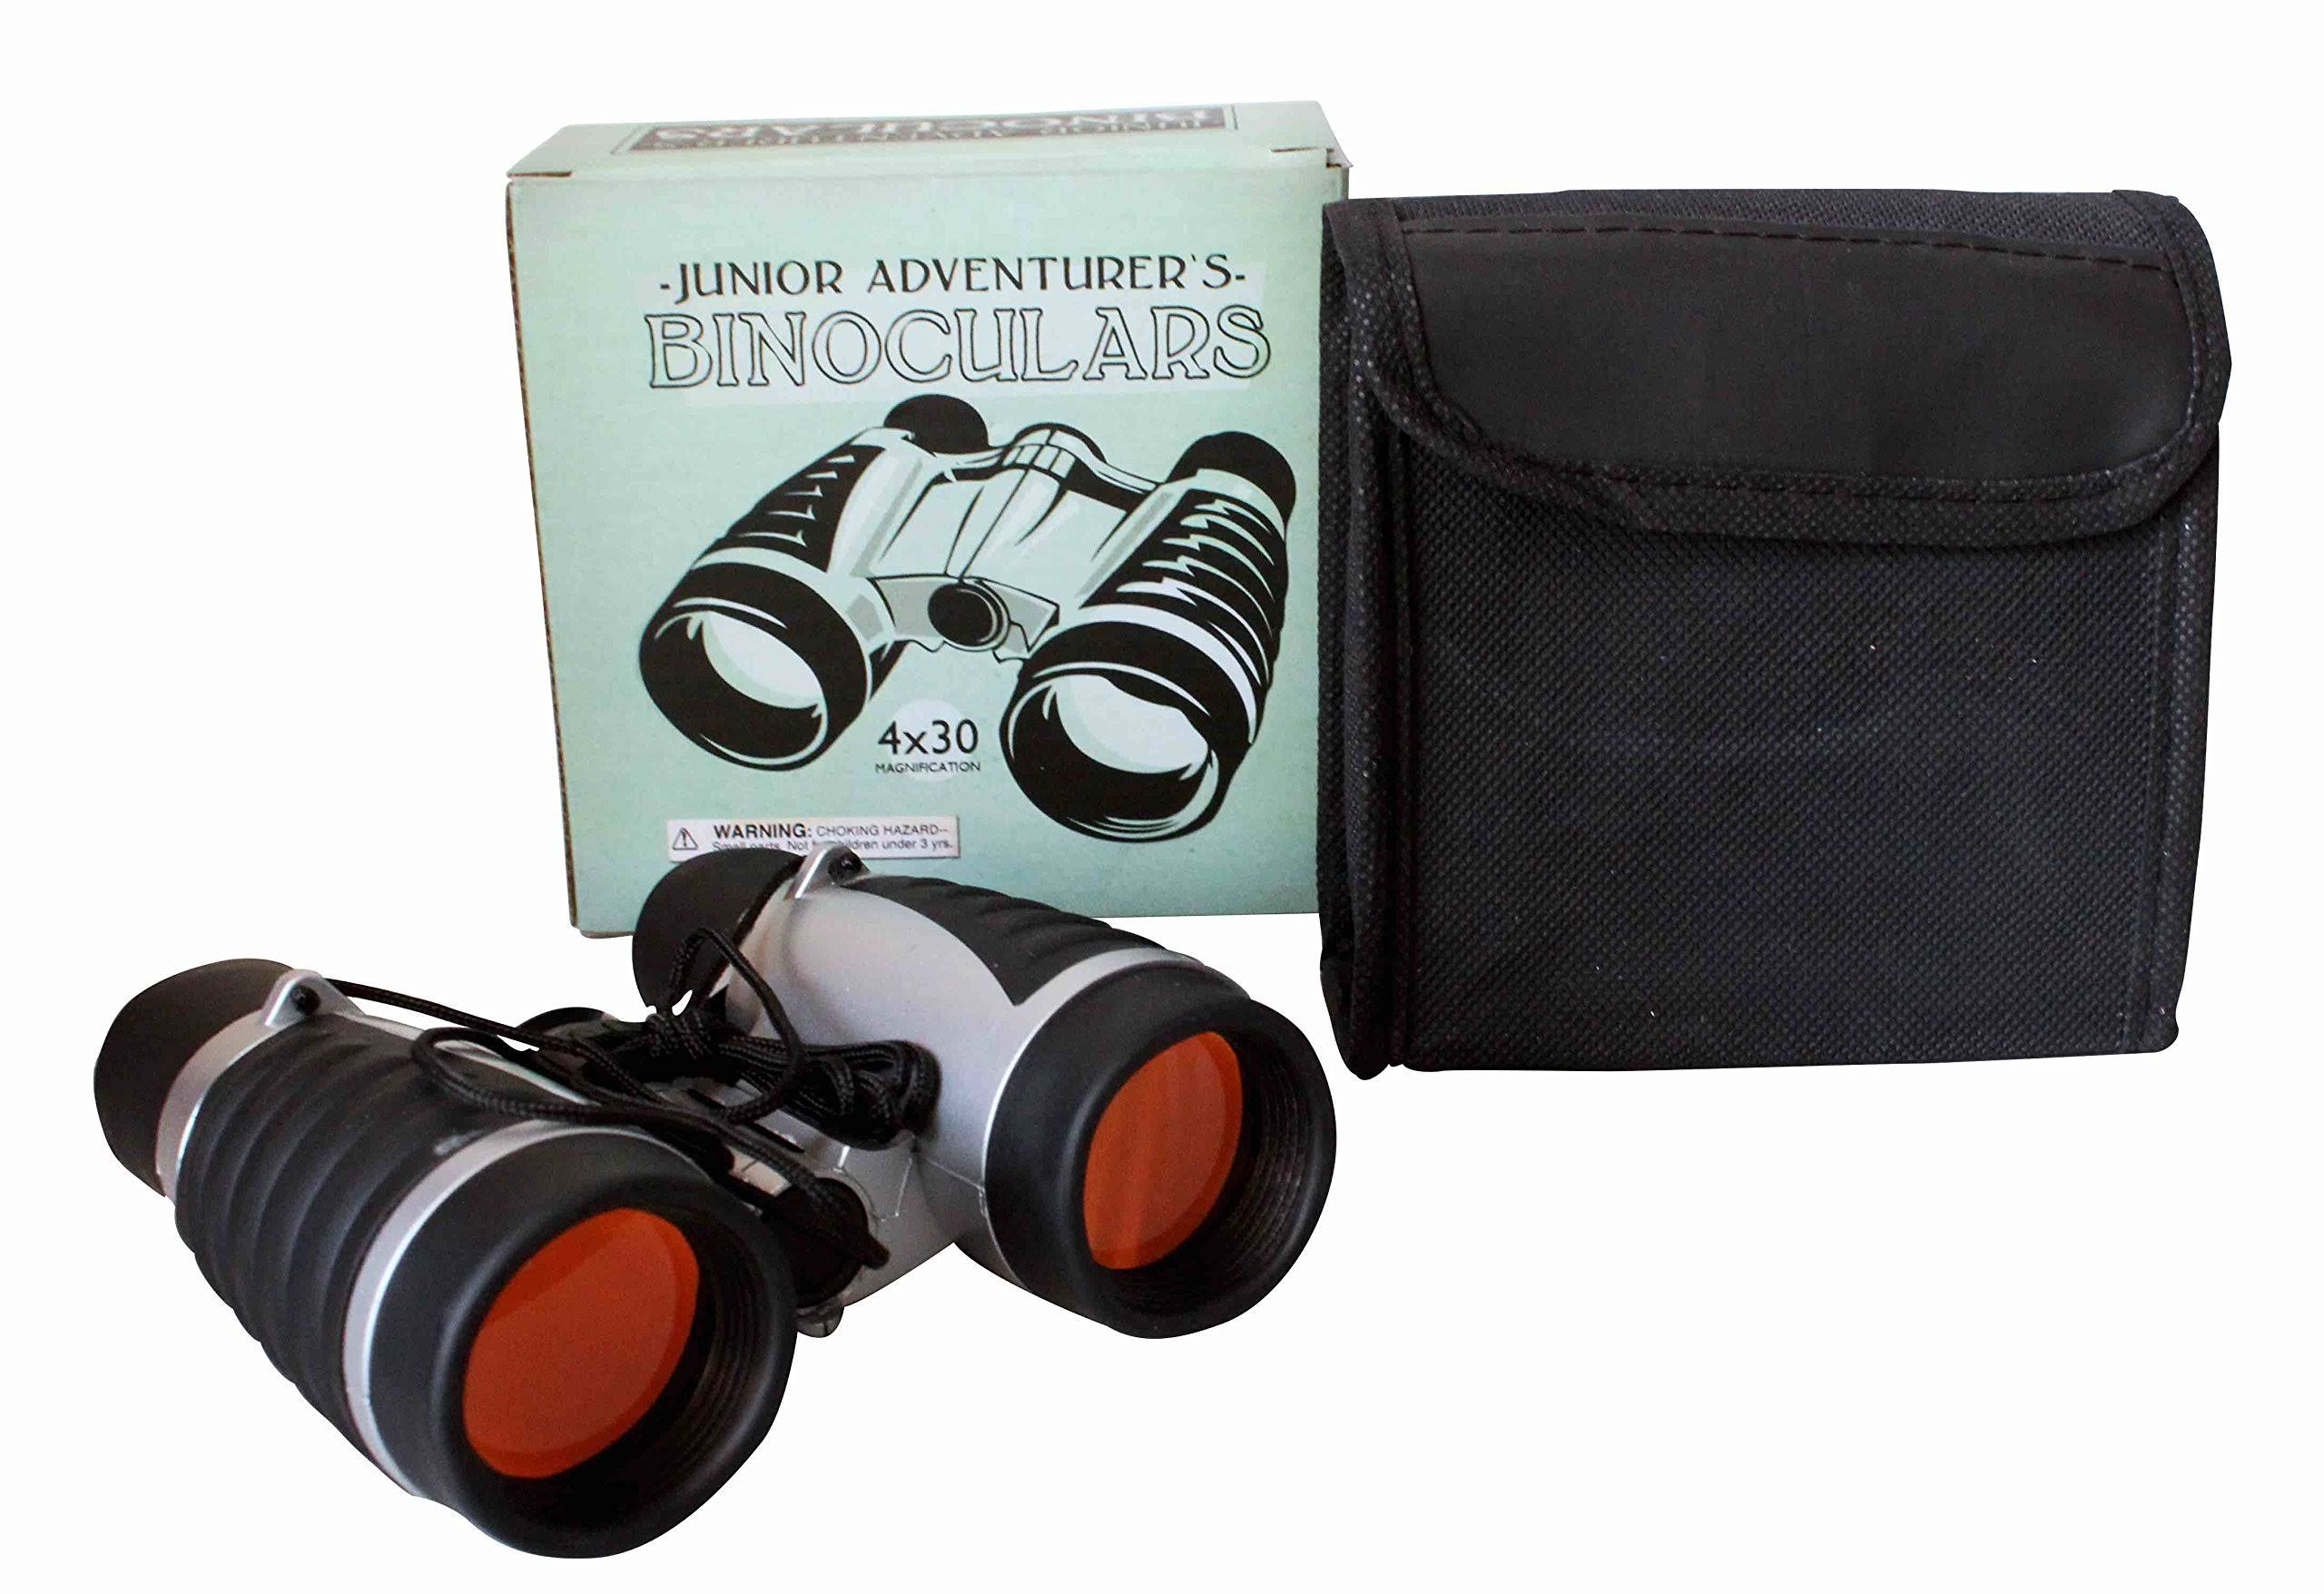 Junior Adventurer's Exploration Binocular - Black